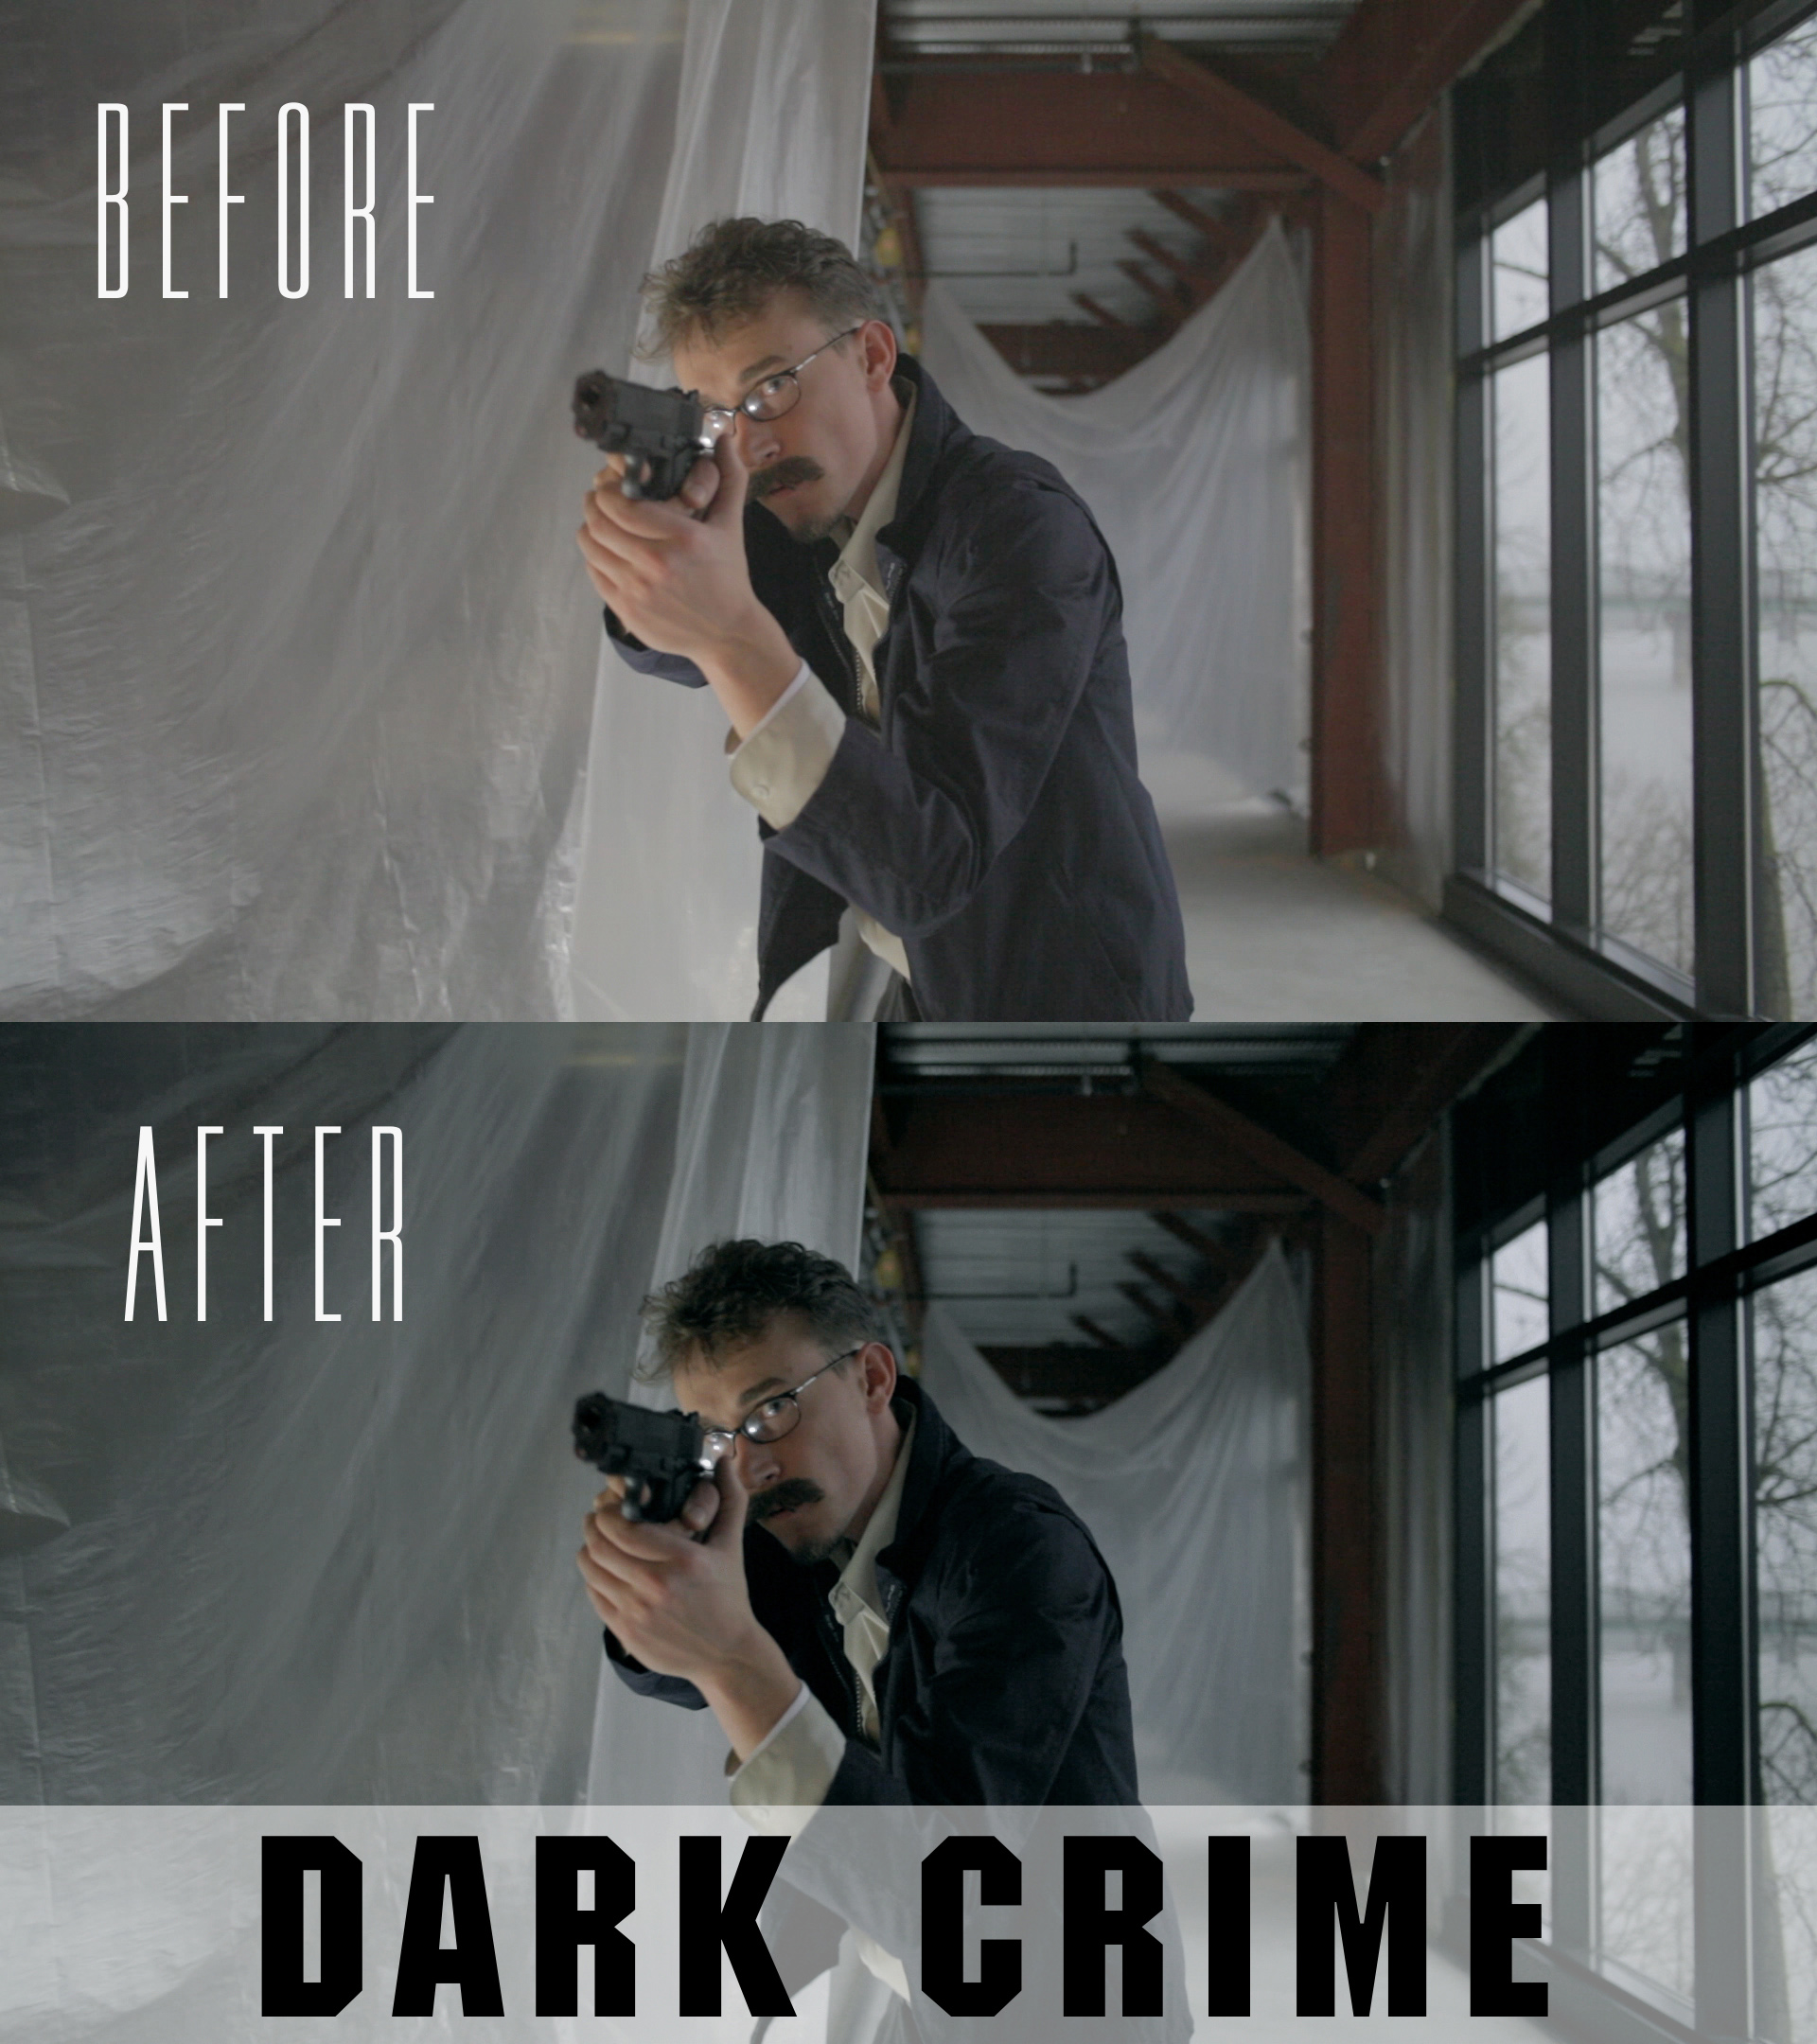 dark crime film color grading effect